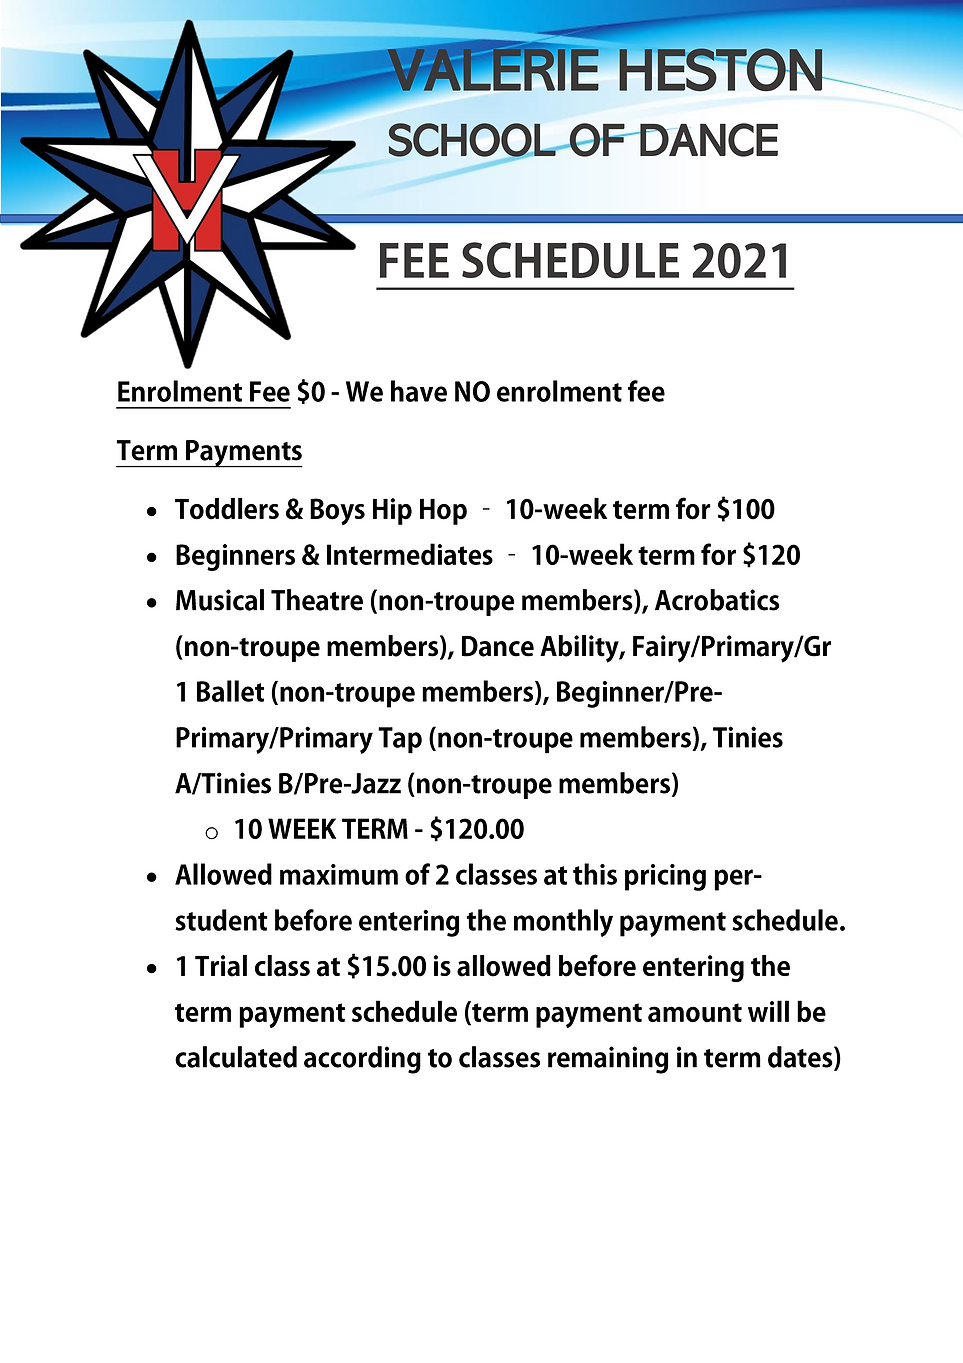 Fee Schedule 2021_001.png